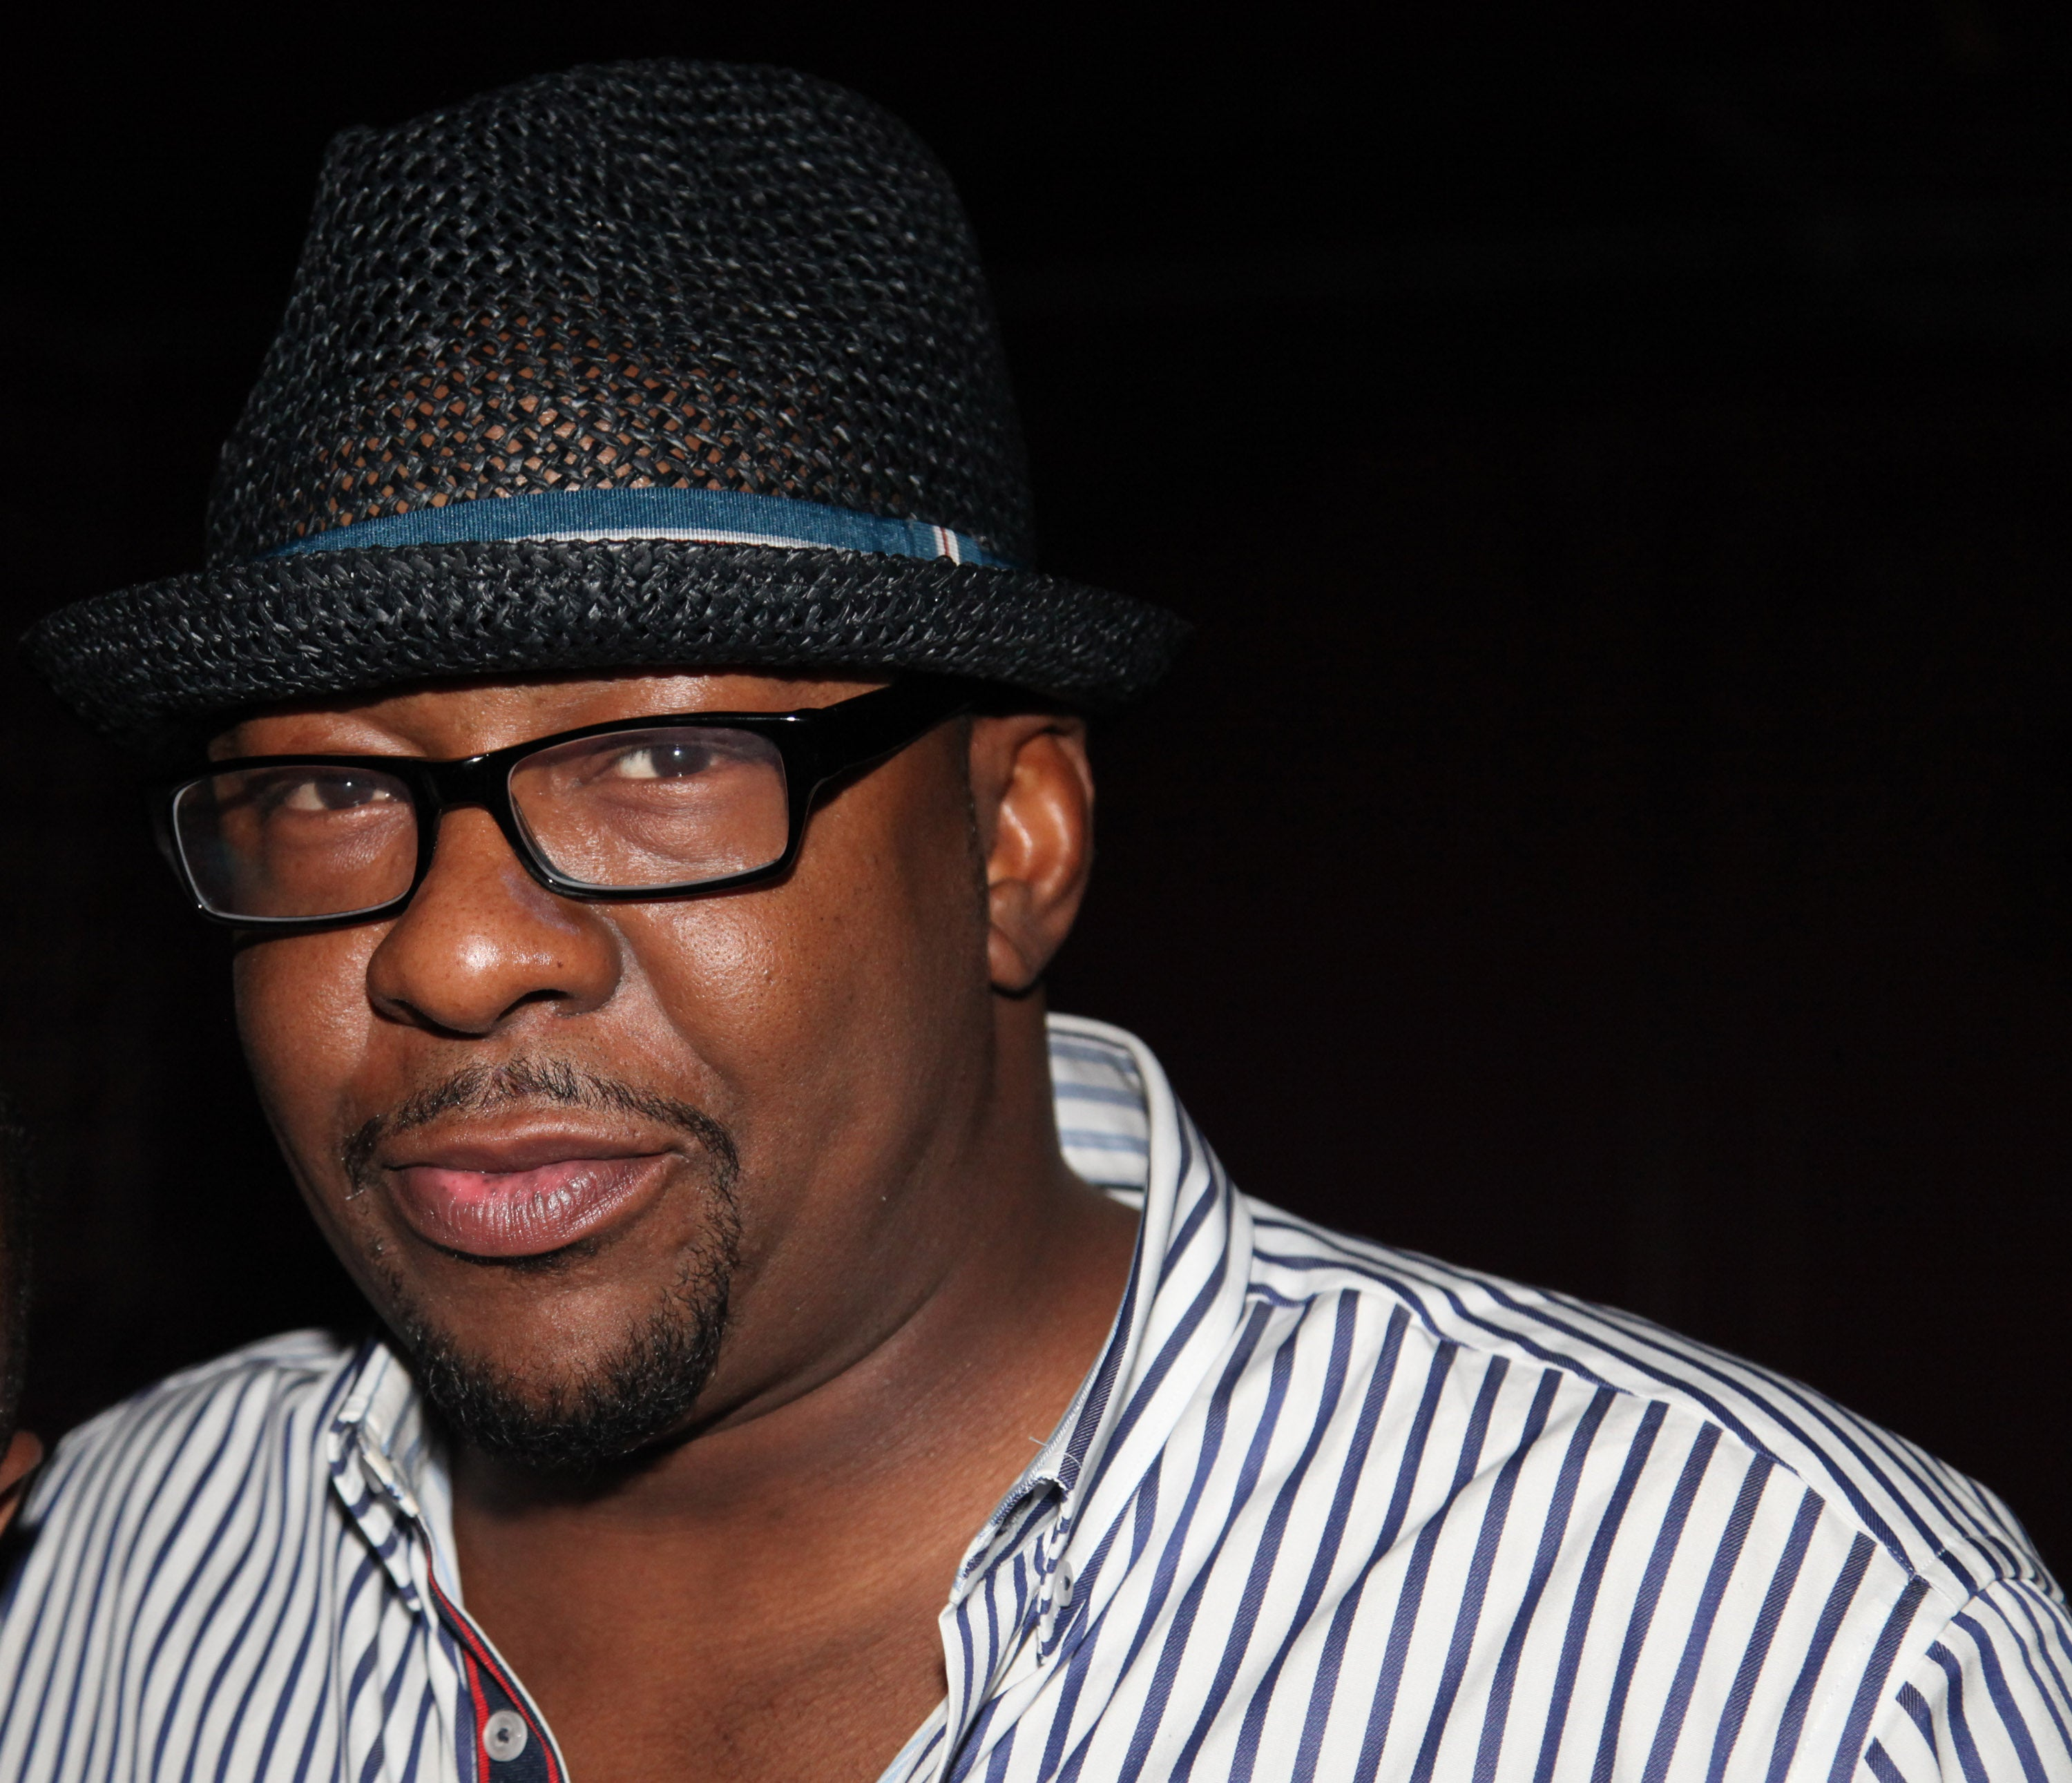 Bobby Brown Enters Rehab for Alcohol Addiction